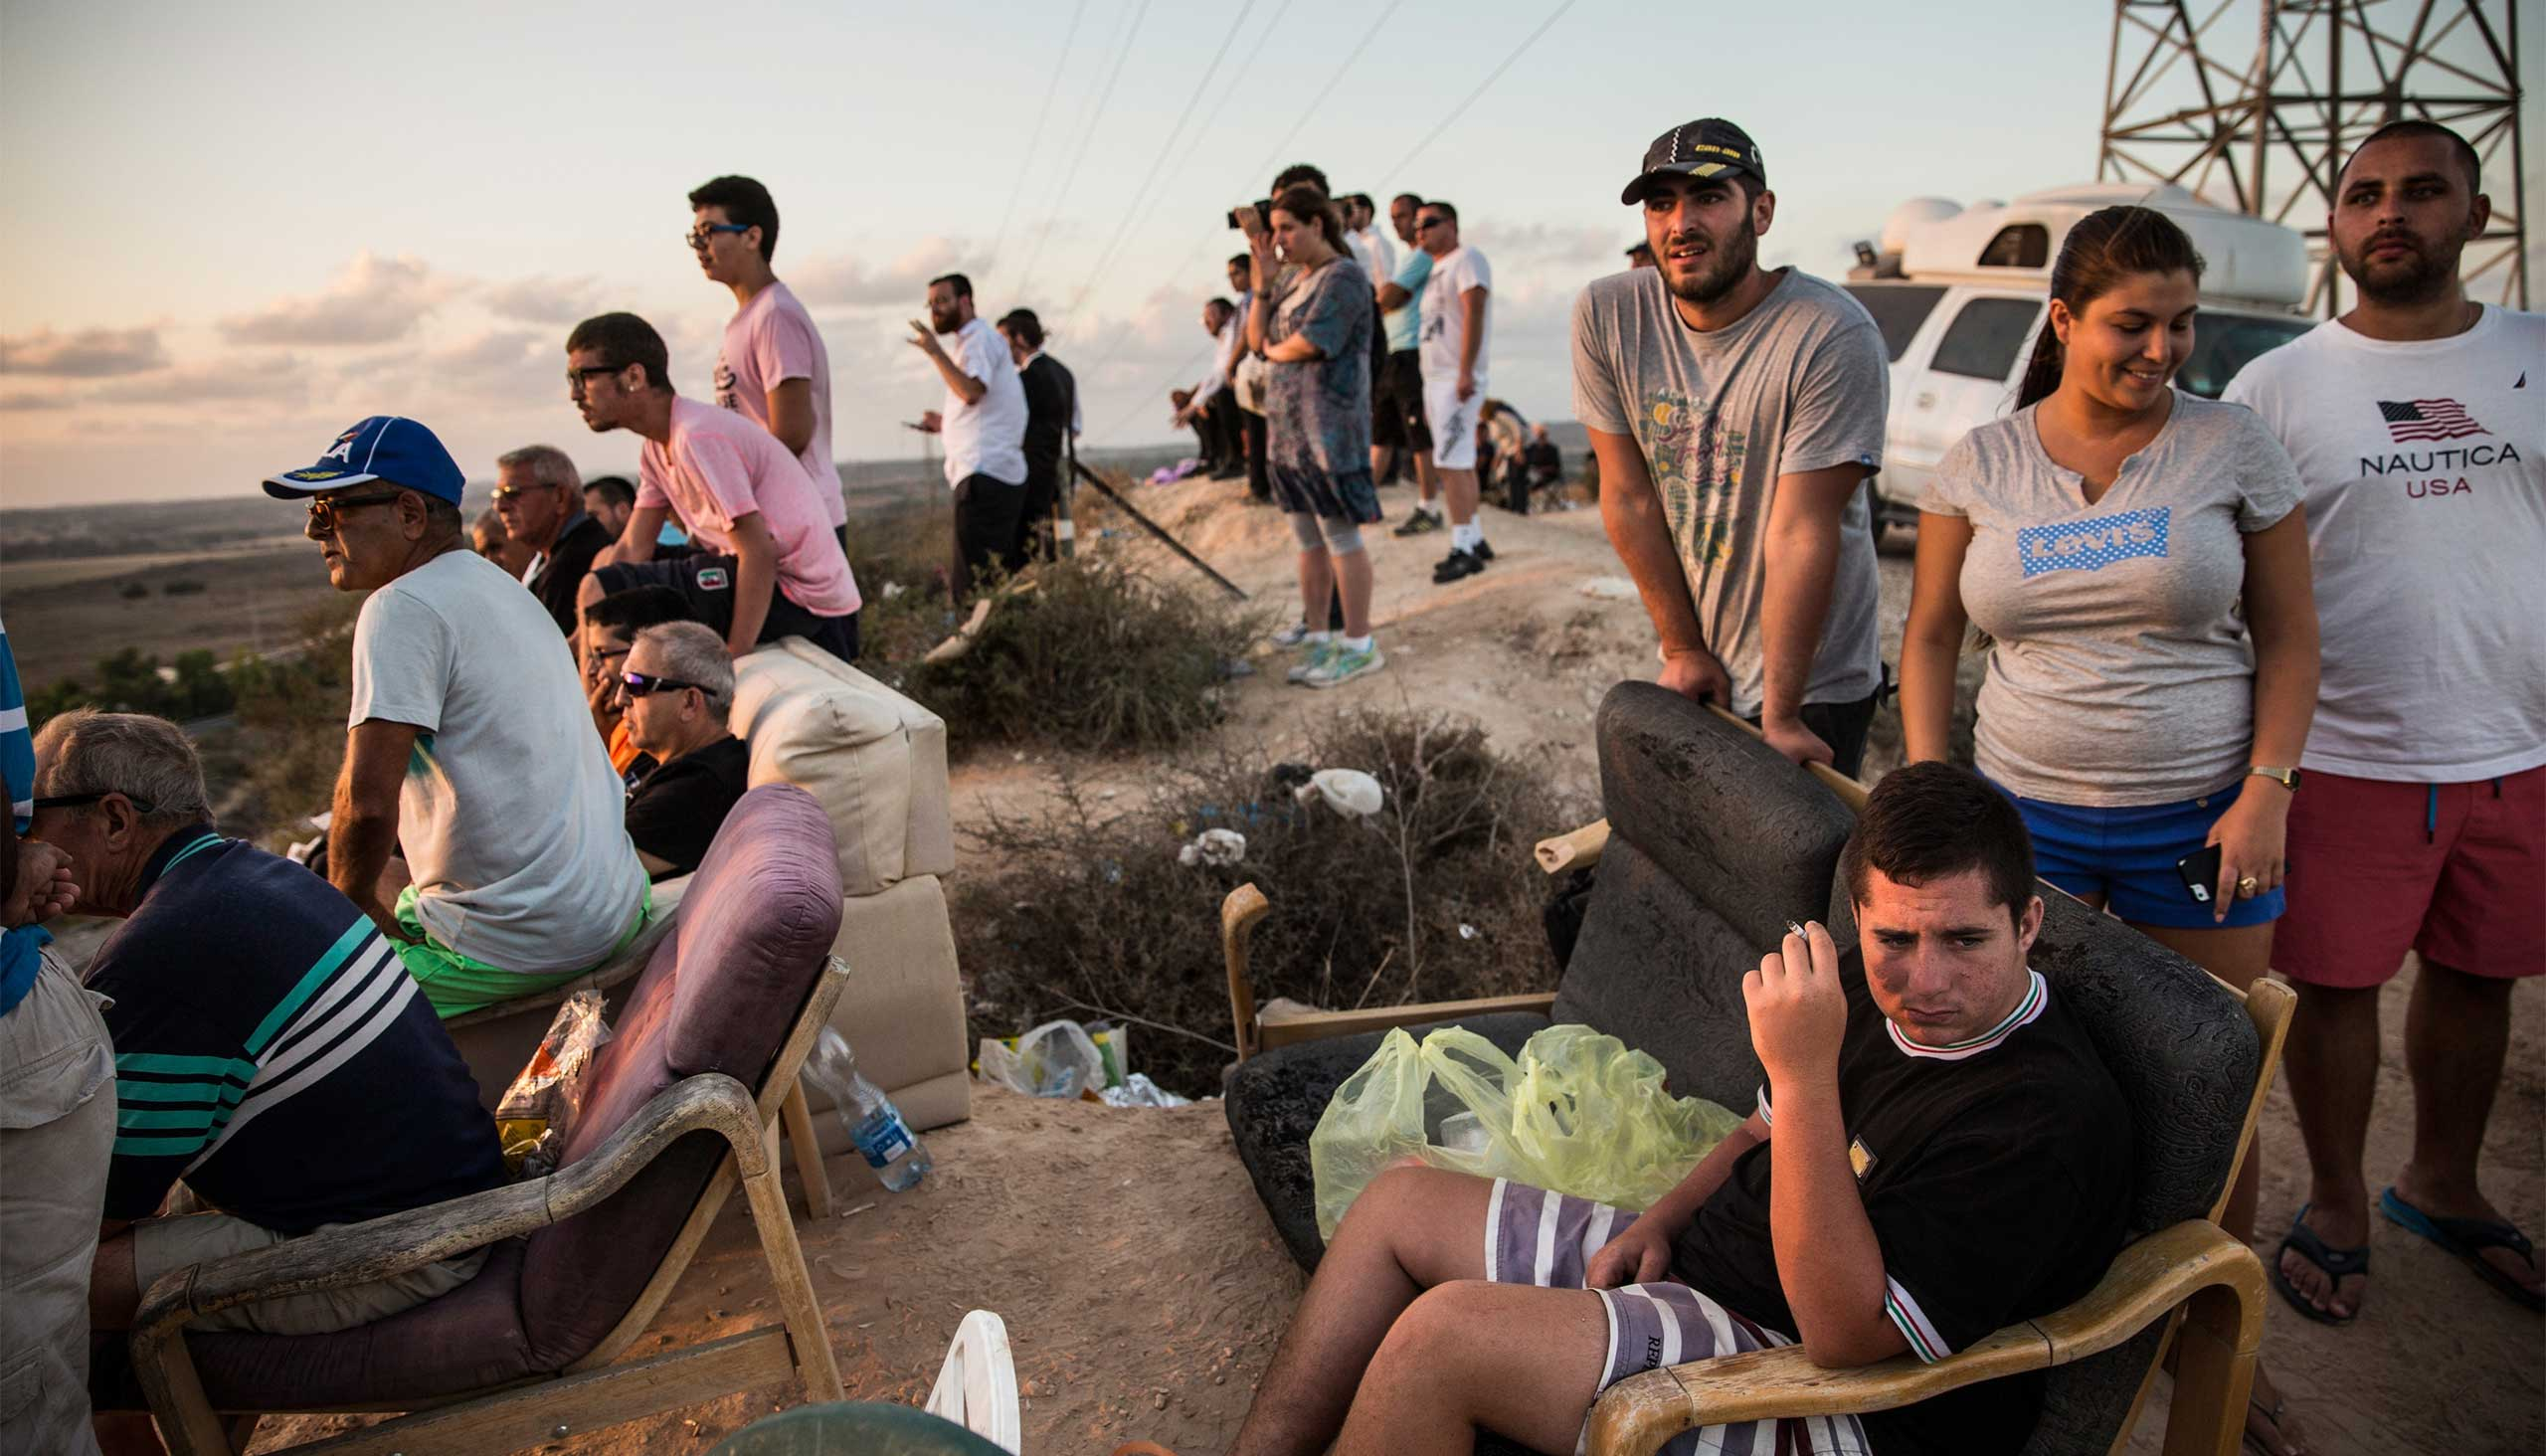 Israelis look for outgoing rocket fire from Gaza and wait for Israeli airstrikes from a hill overlooking the Gaza Strip in Sderot, Israel, July 14, 2014.